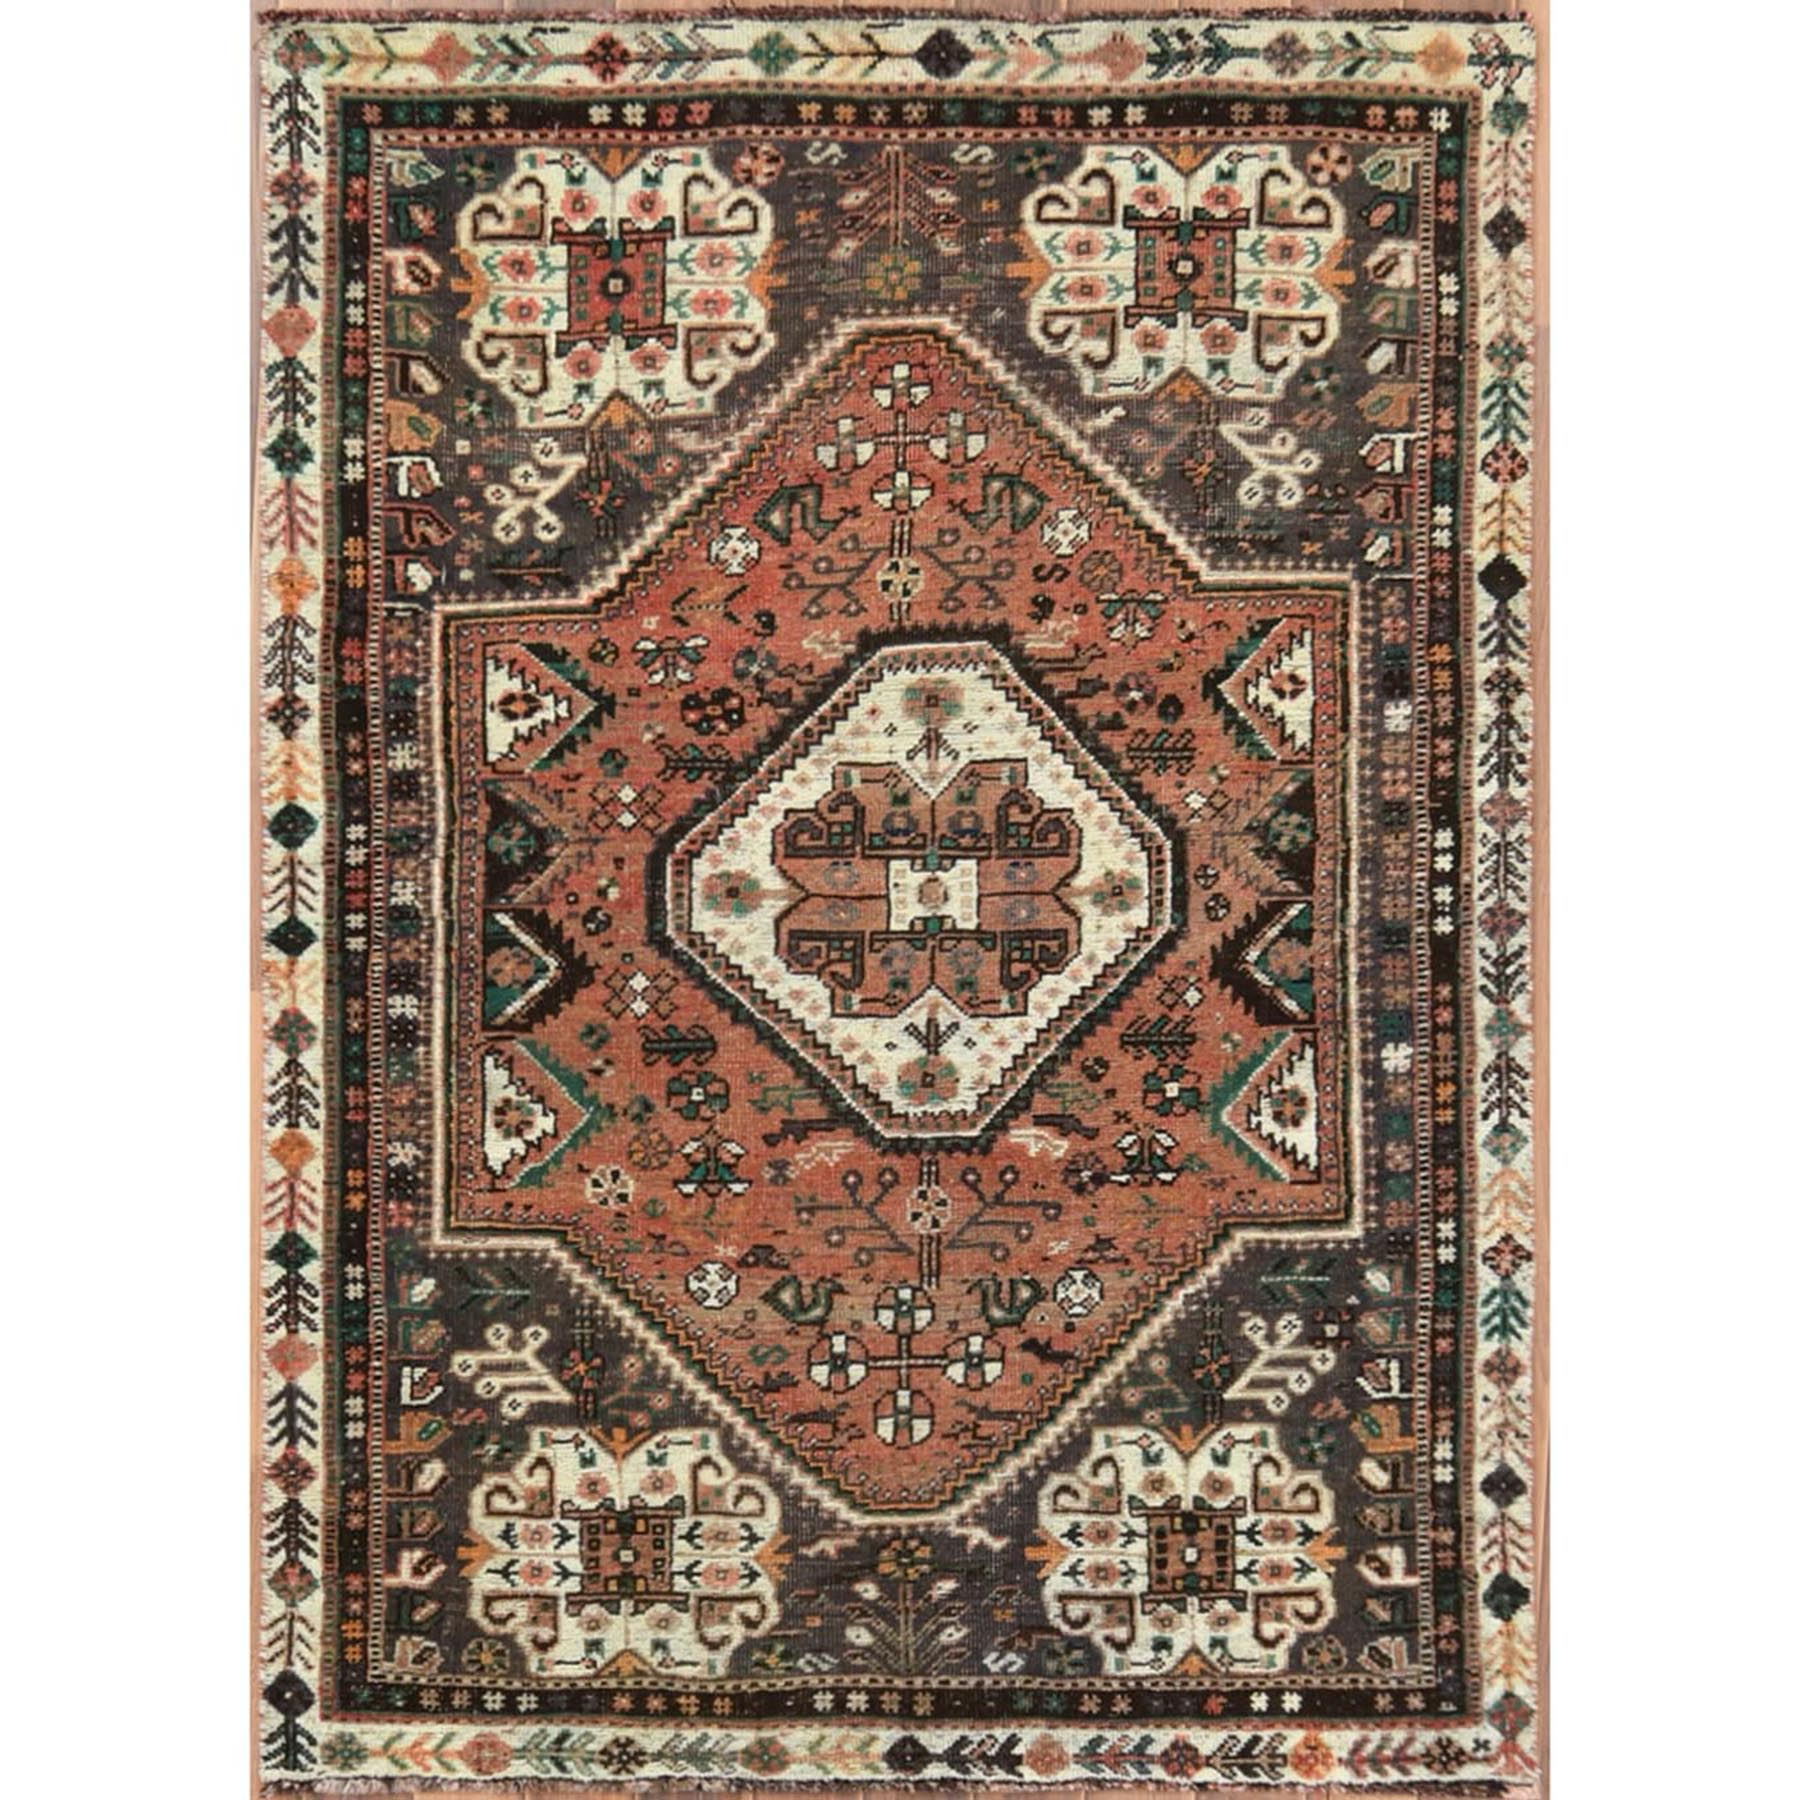 "3'4""x4'8"" Pure Wool Mocha Color Persian Shiraz Vintage Distressed Shabby Chic Clean Hand Woven Oriental Rug"